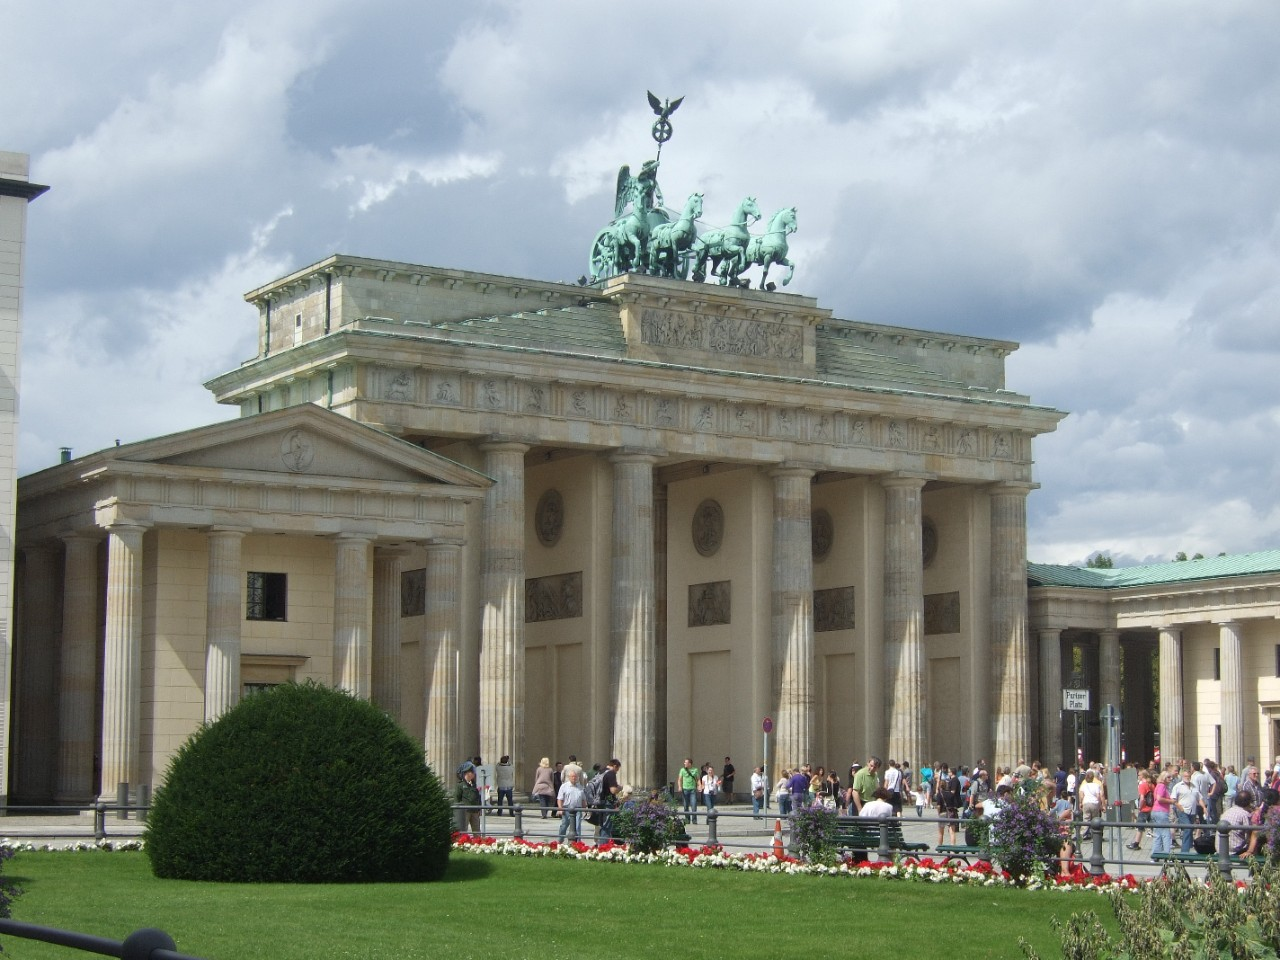 Brandenburger Tor in Berlin, Germany - Photo: Anastasia Zander